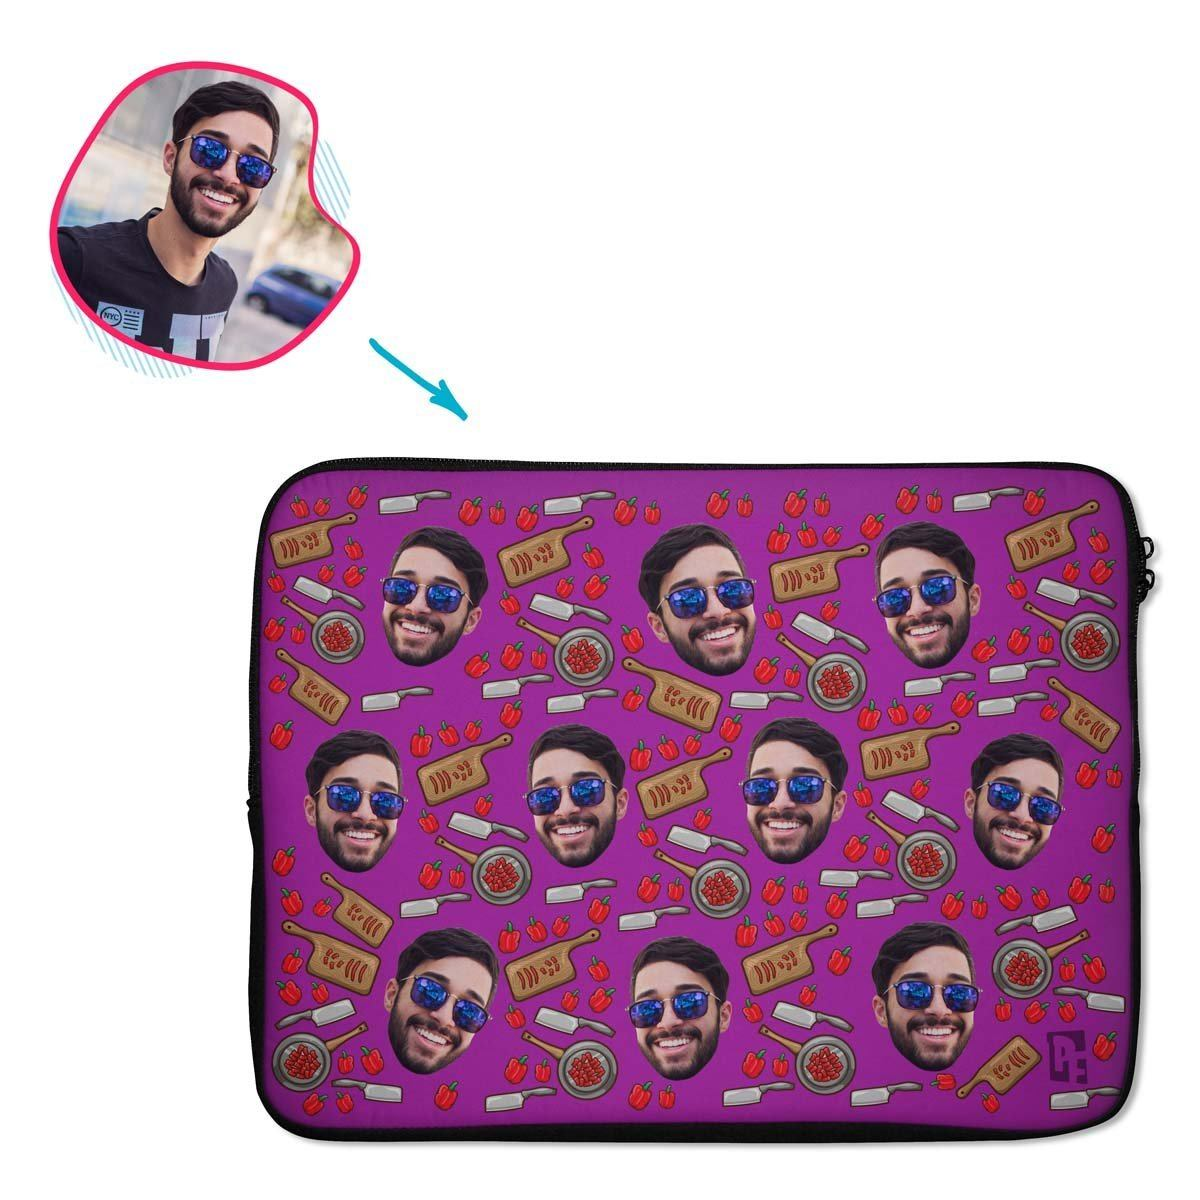 purple Сooking laptop sleeve personalized with photo of face printed on them